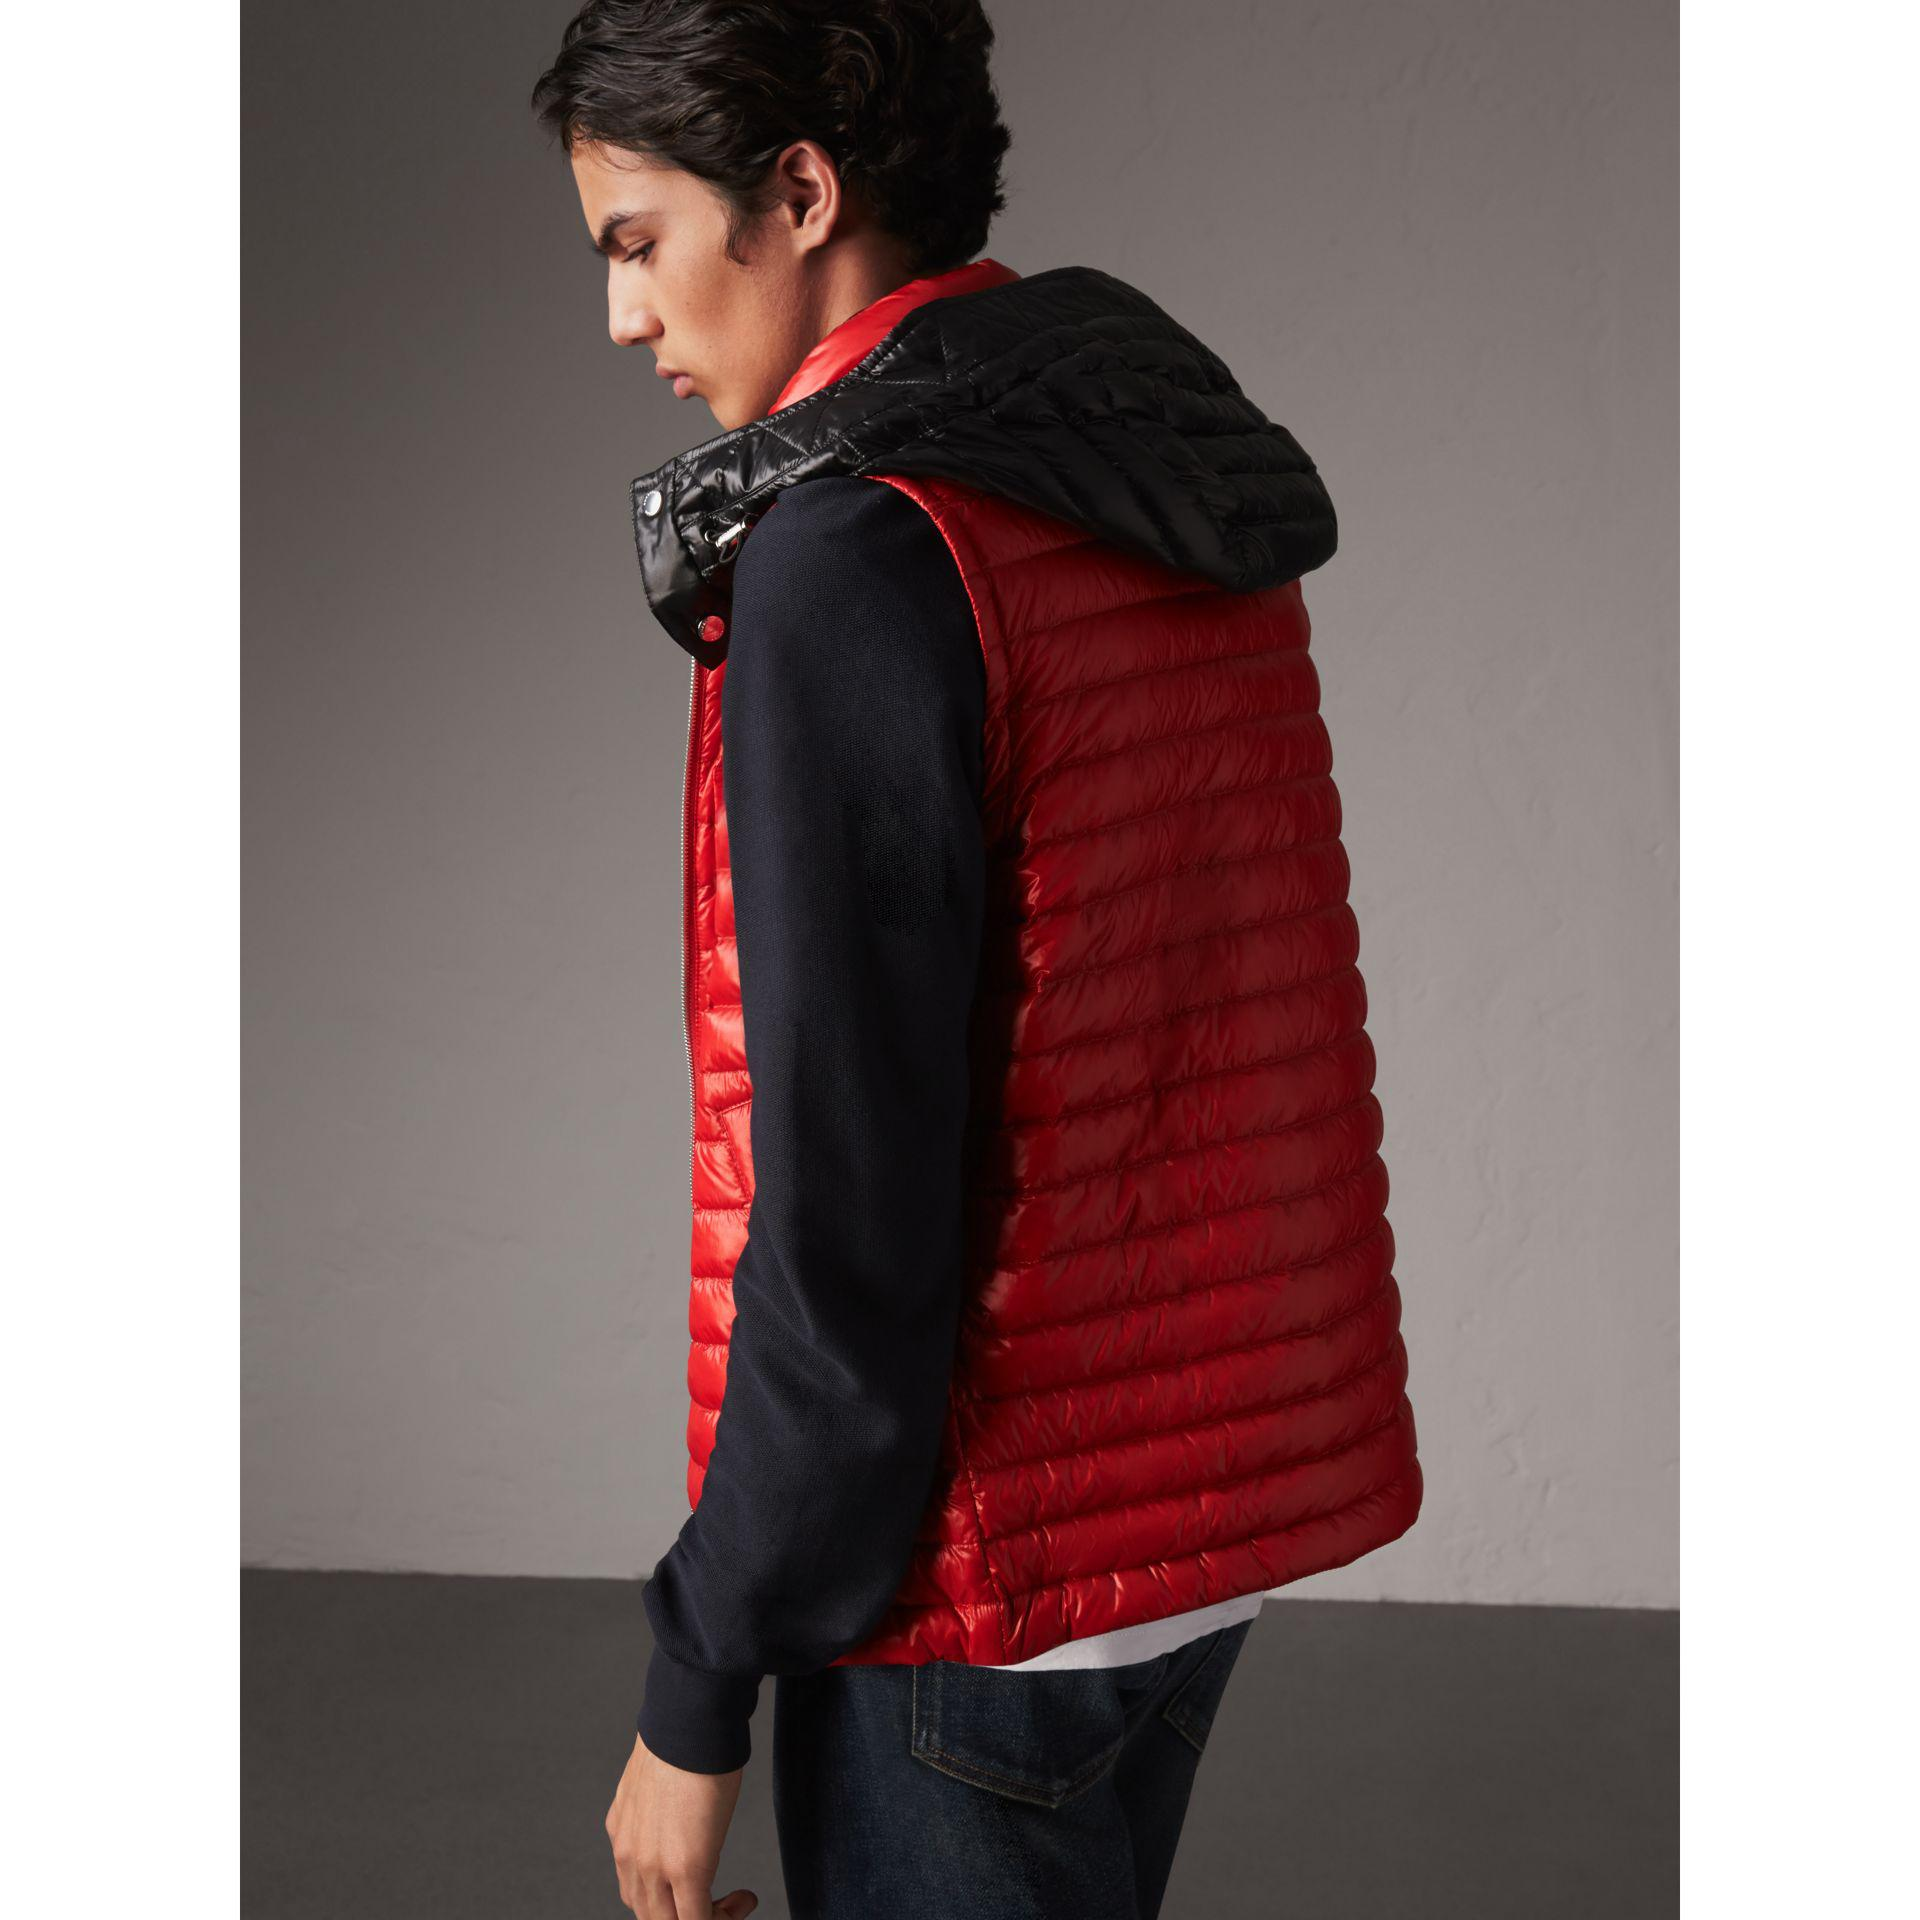 Burberry Detachable Hood Packaway Goose-down Gilet In Military Red | for Men